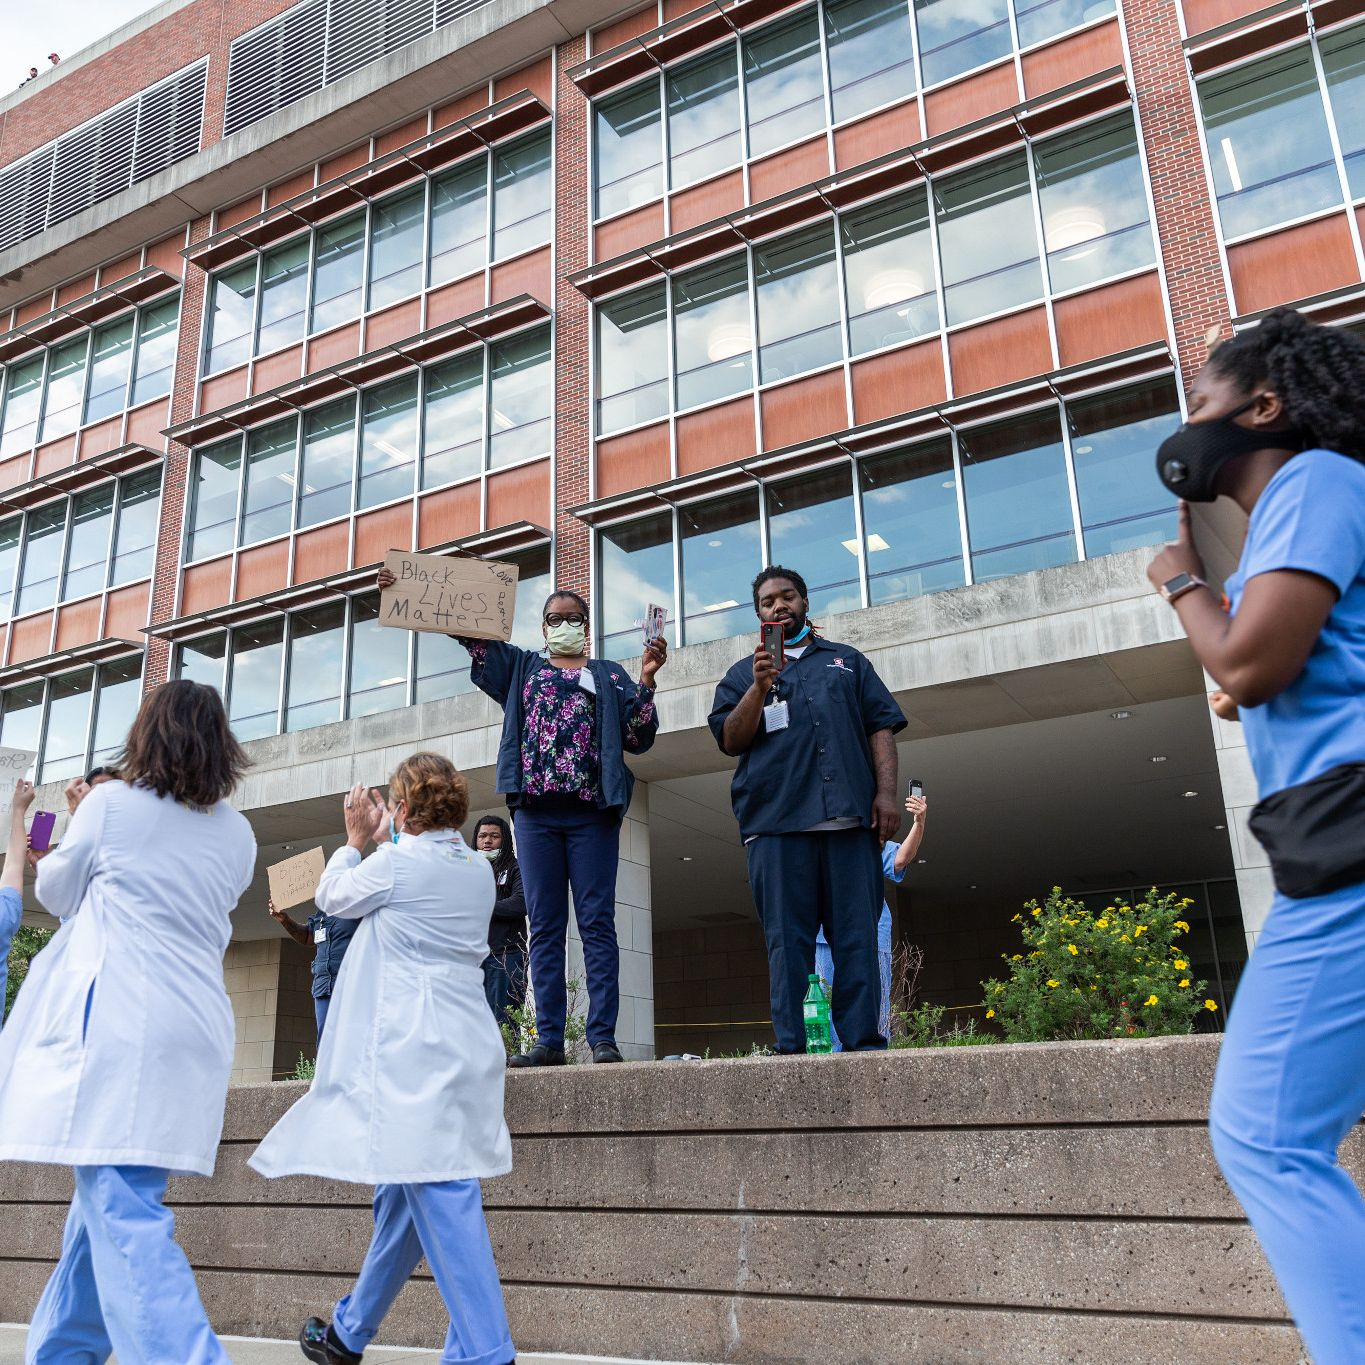 Hospital workers cheer on marchers